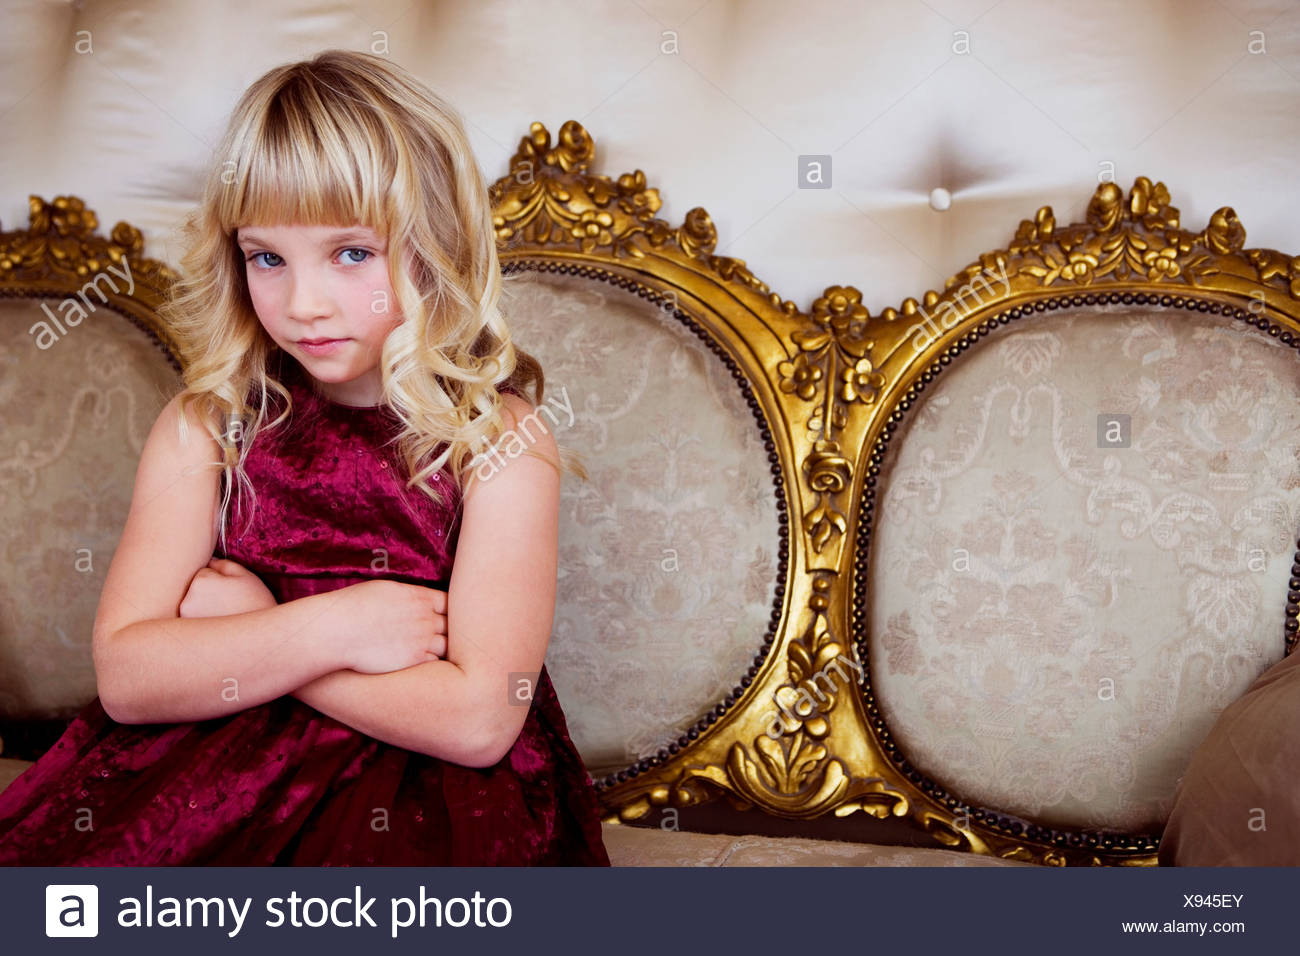 Young girl in a party dress looking bored and unhappy - Stock Image